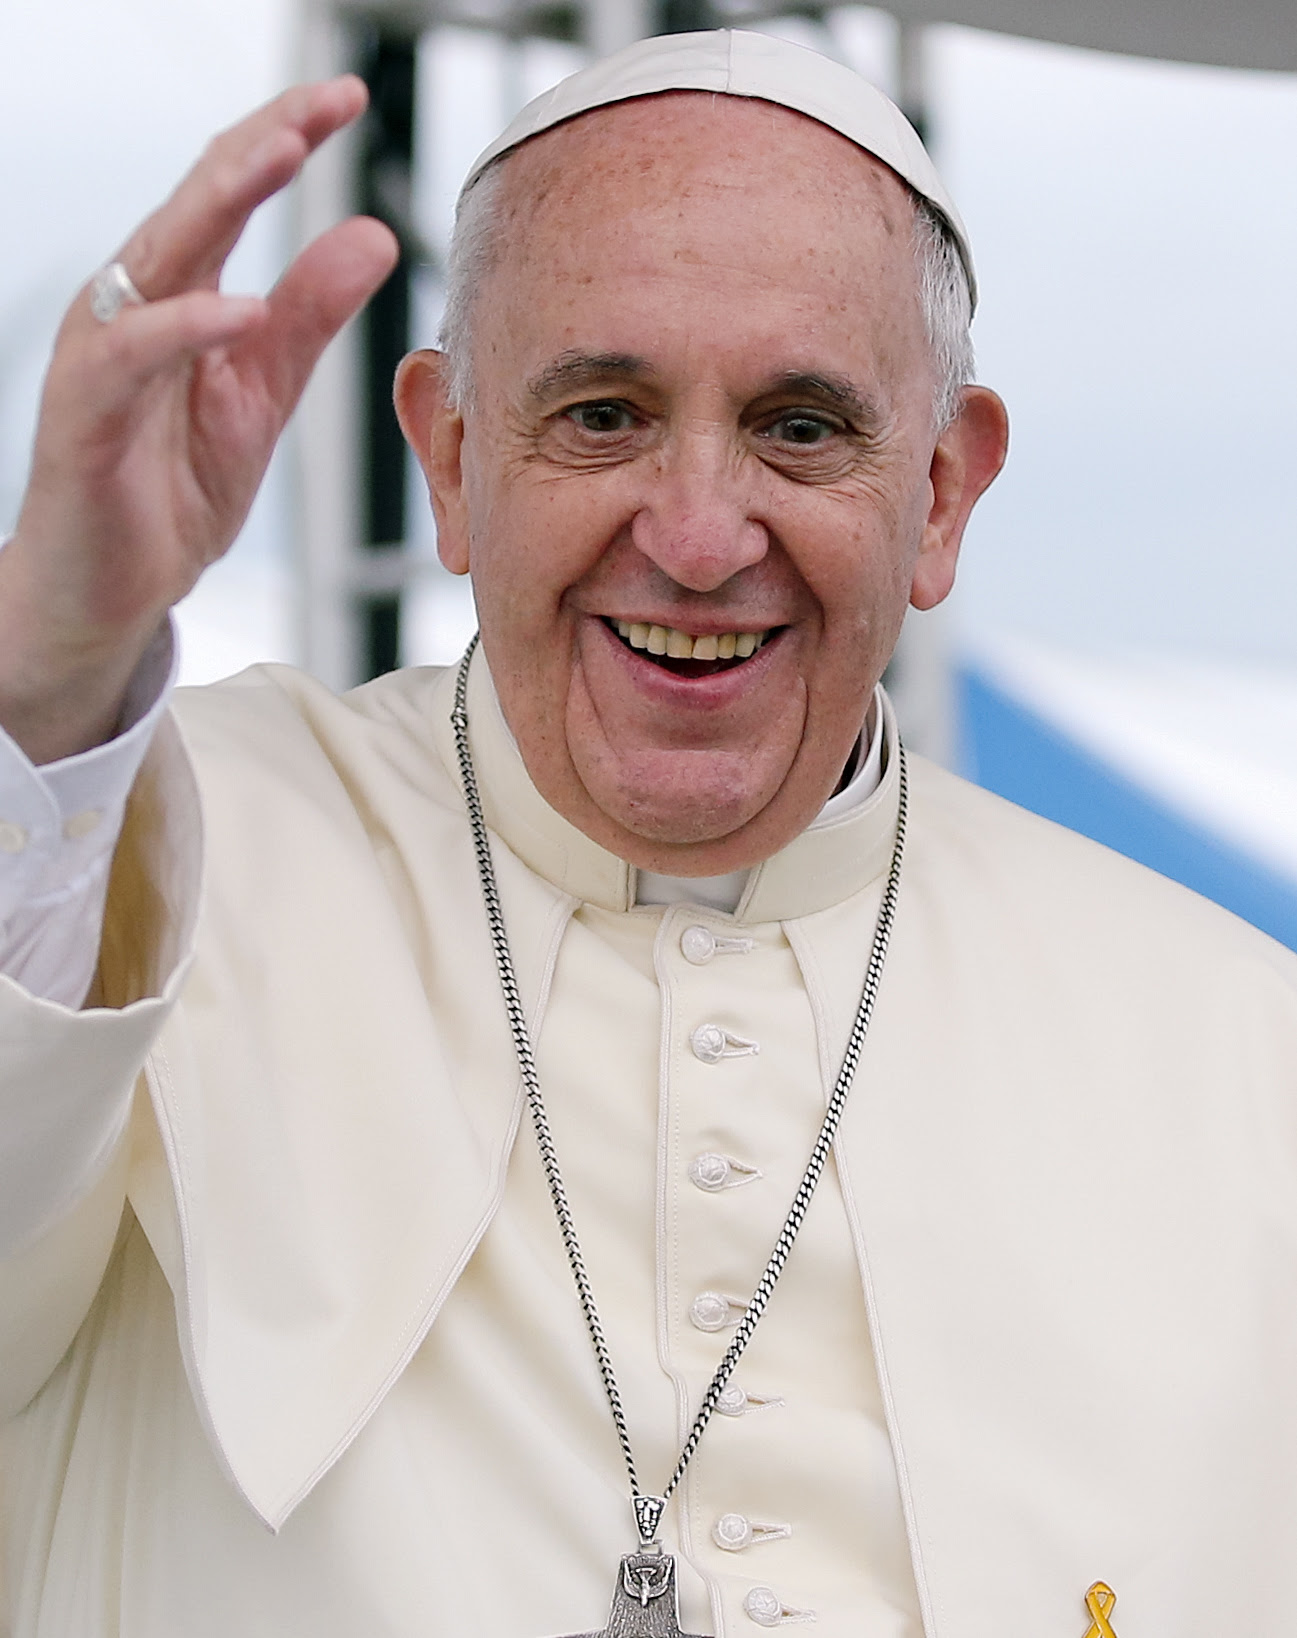 Image result for pictures of Pope Francis